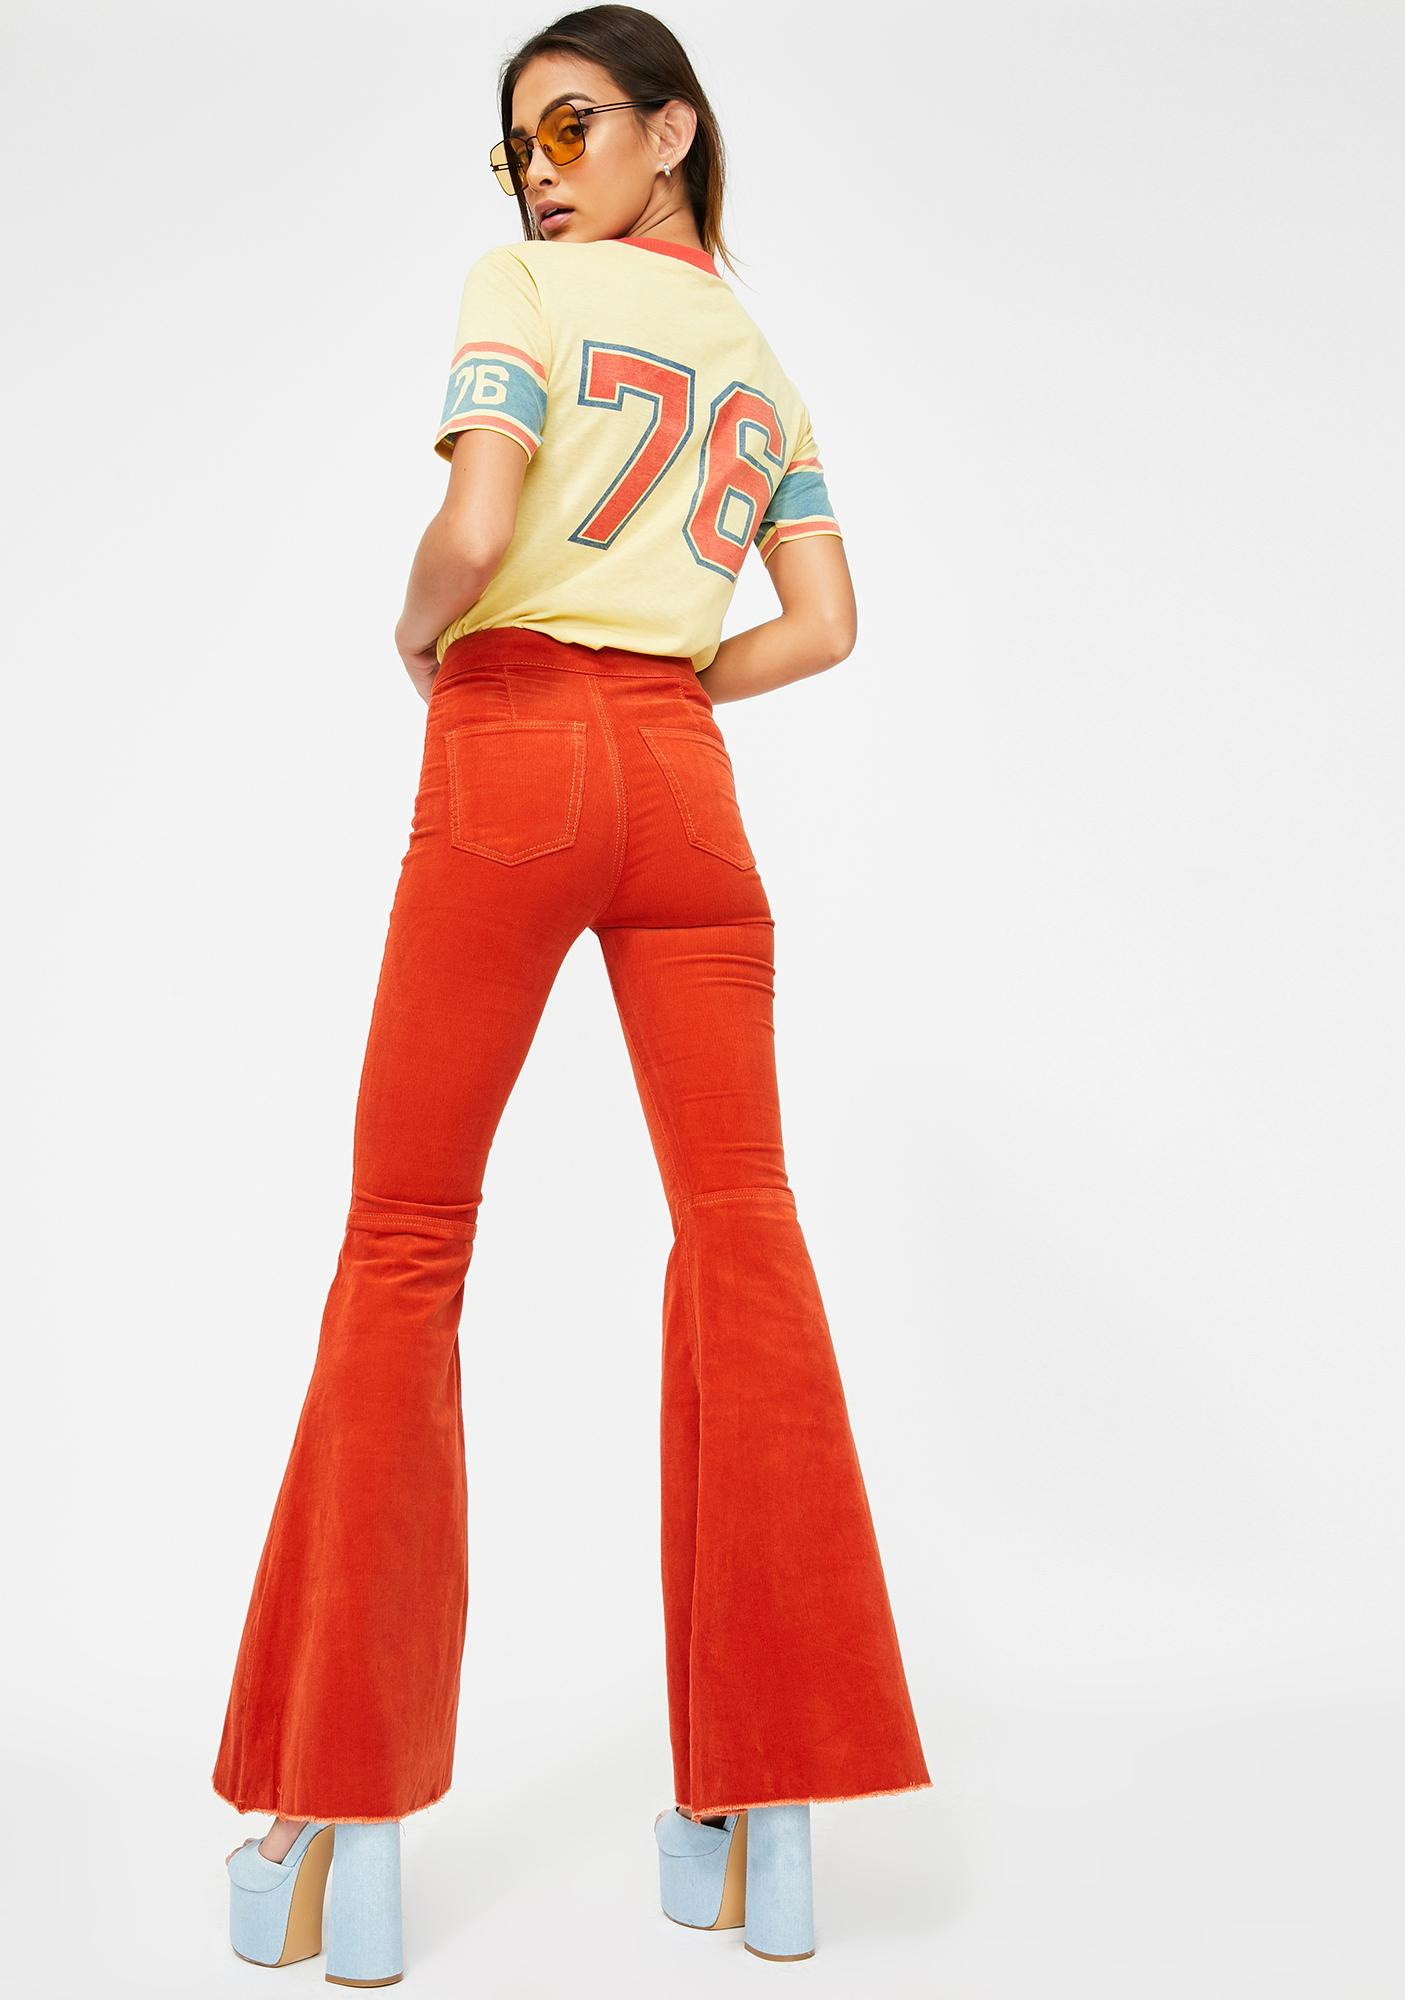 Momokrom Orange Mermaid Flare Corduroy Pants